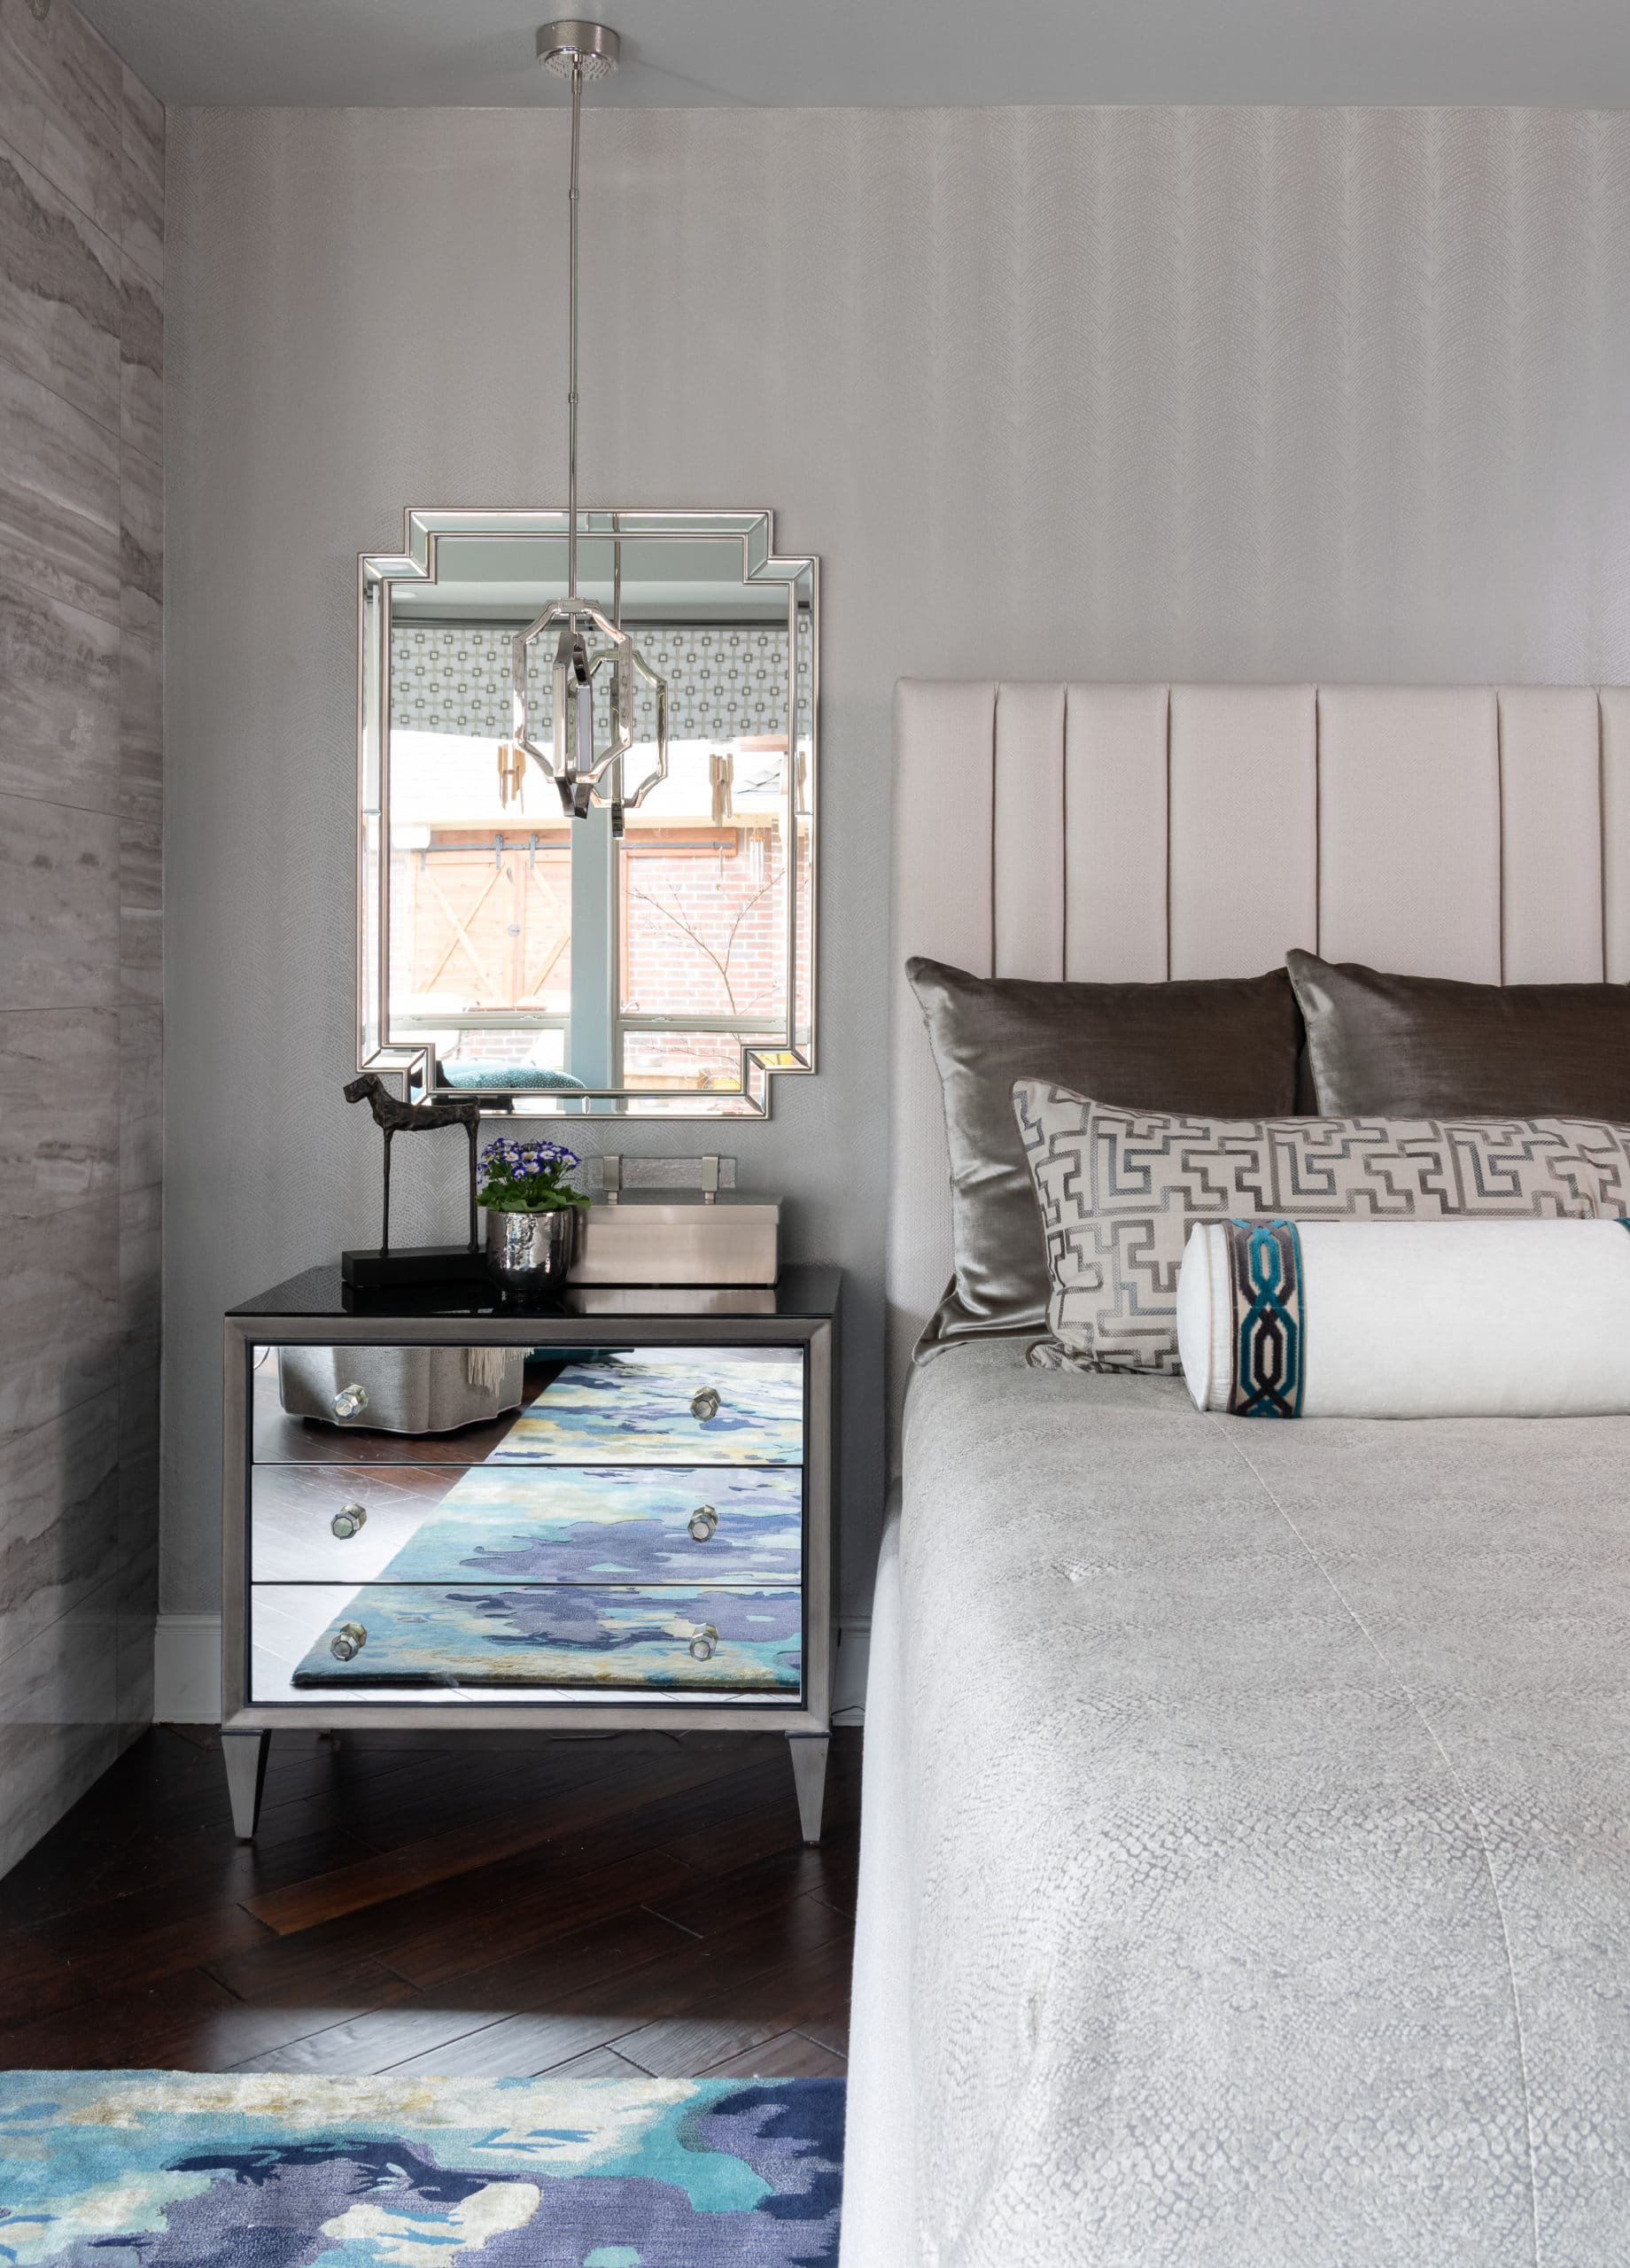 MIRRORED NIGHTSTANDS CHESTS WITH PENDANT CHANDELIER IN PLACE OF LAMP IN MODERN MASTER BEDROOM RENOVATION WITH COLORFUL ACCENTS & HOME DECOR | Best Dallas Bathroom Designer Dee Frazier Interiors, Decorating Den Interiors, Best Designer In Dallas, Plano, Frisco, Allen